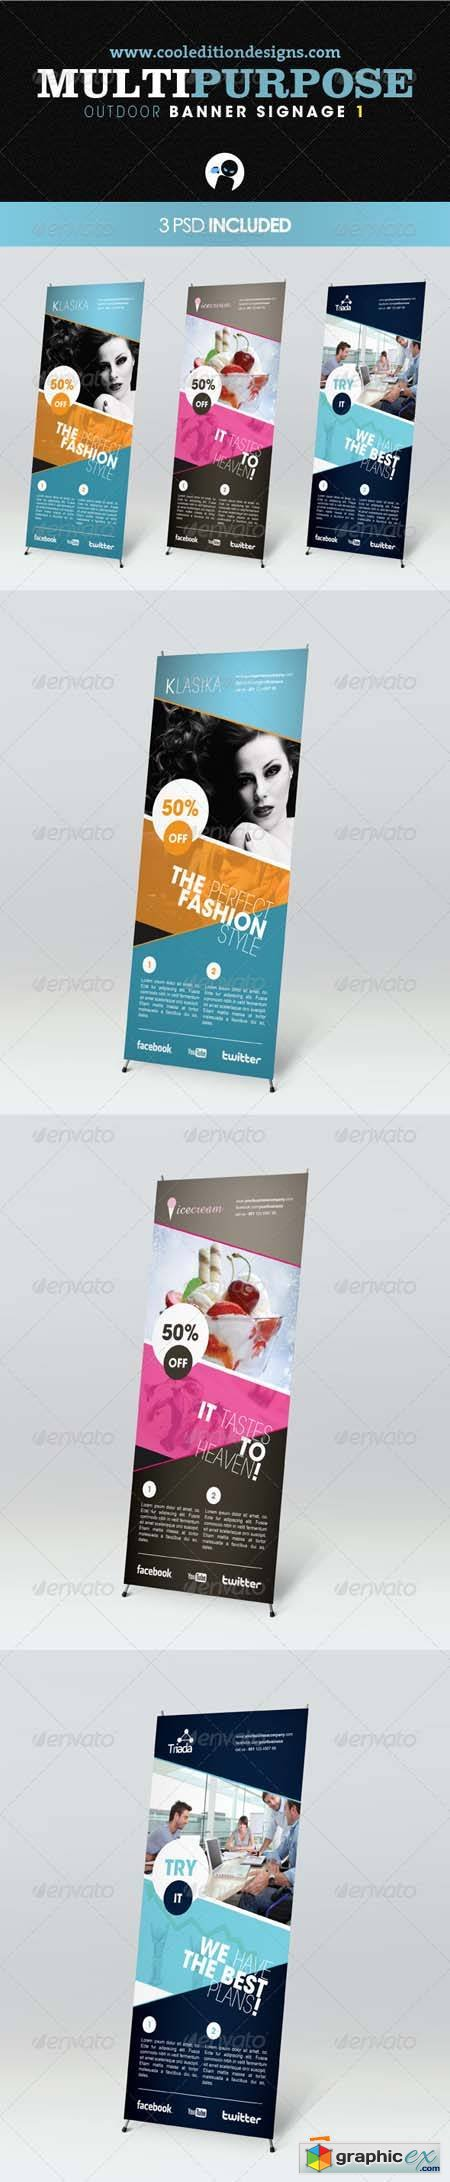 Multipurpose Outdoor Banner Signage 1 Photoshop